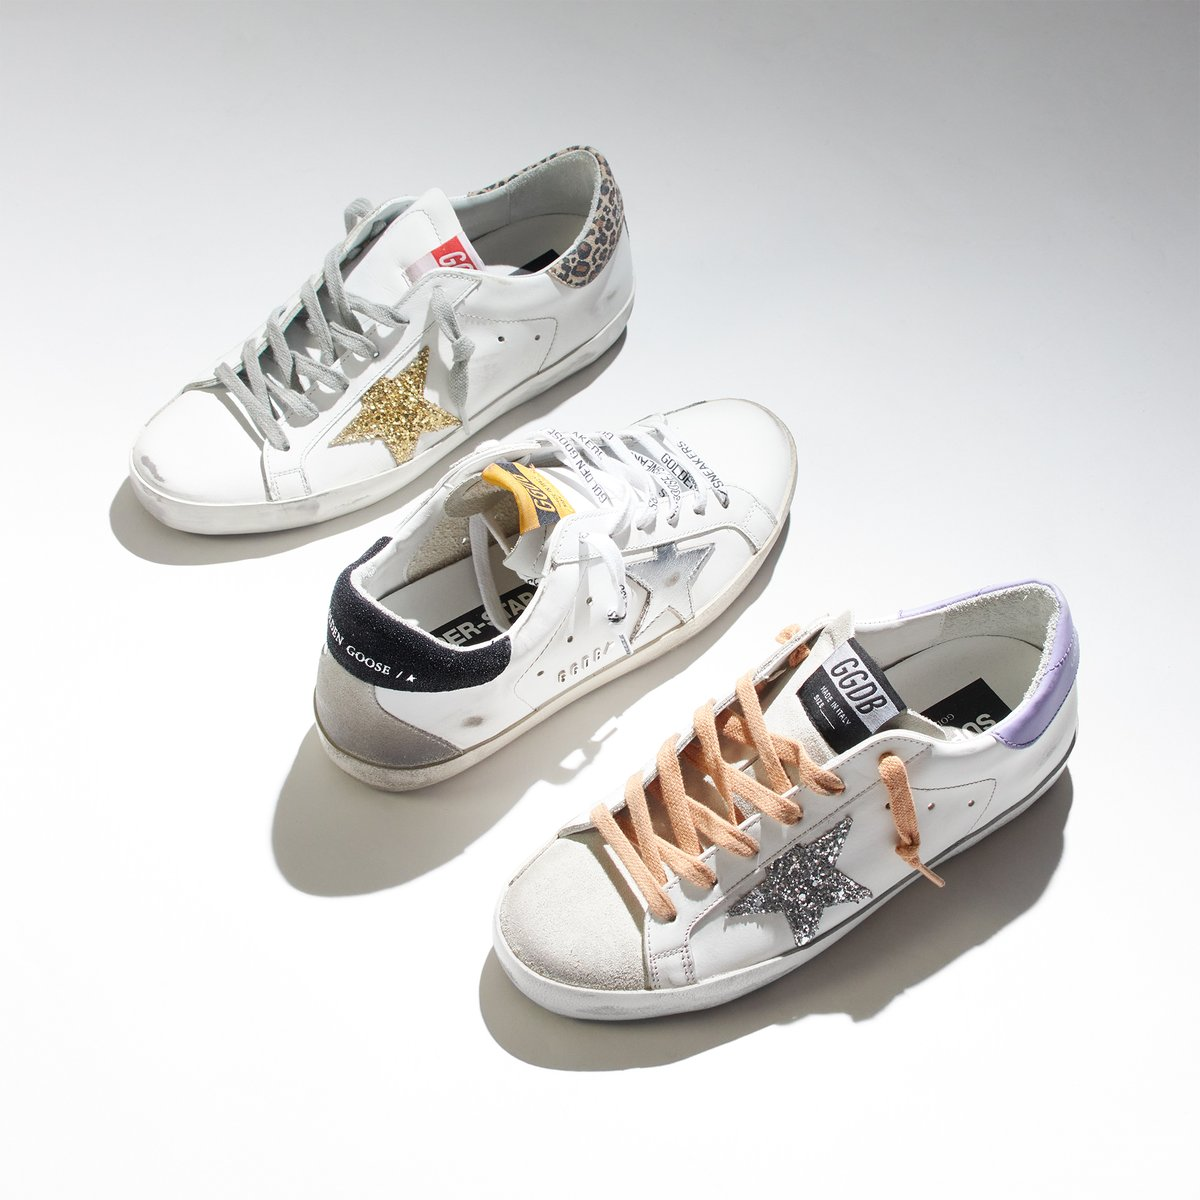 Season after season, #GoldenGooseDeluxeBrand presents the superstar sneakers in brand new designs with bright colours and patterns. #GoldenGoose #GiulioFashion #GiulioOriginal   Take a look at the new season sneakers for women online: https://bit.ly/WomensNewInFootwear…pic.twitter.com/qDDN6Nvf5H